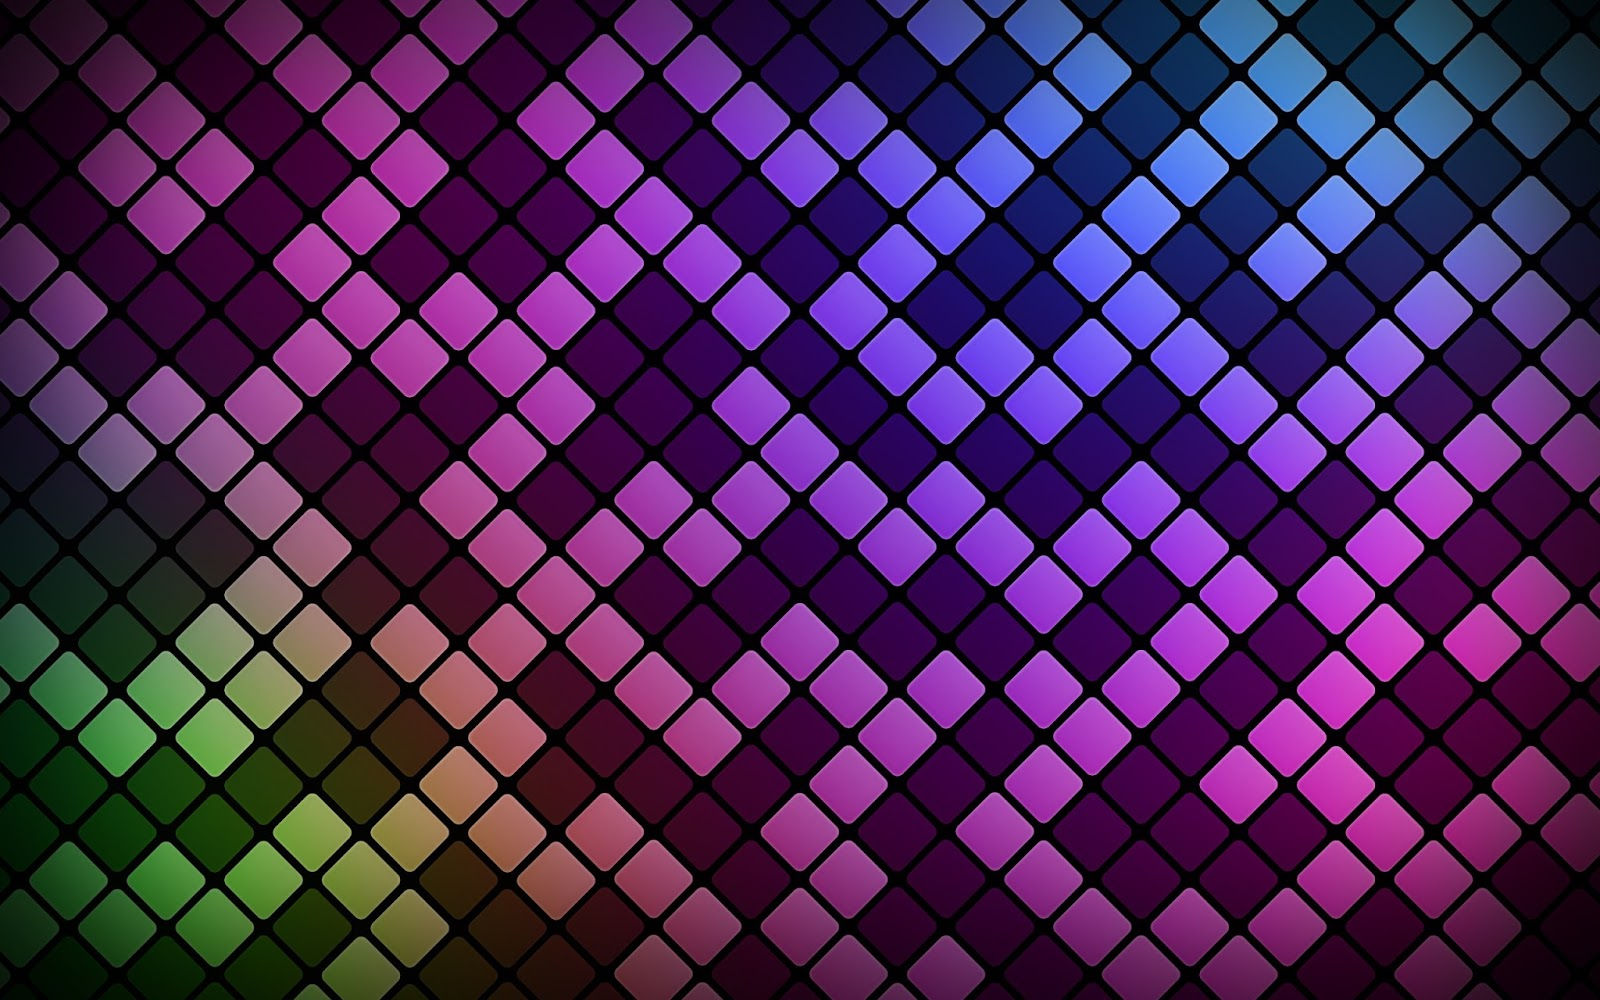 Colorful Wallpaper